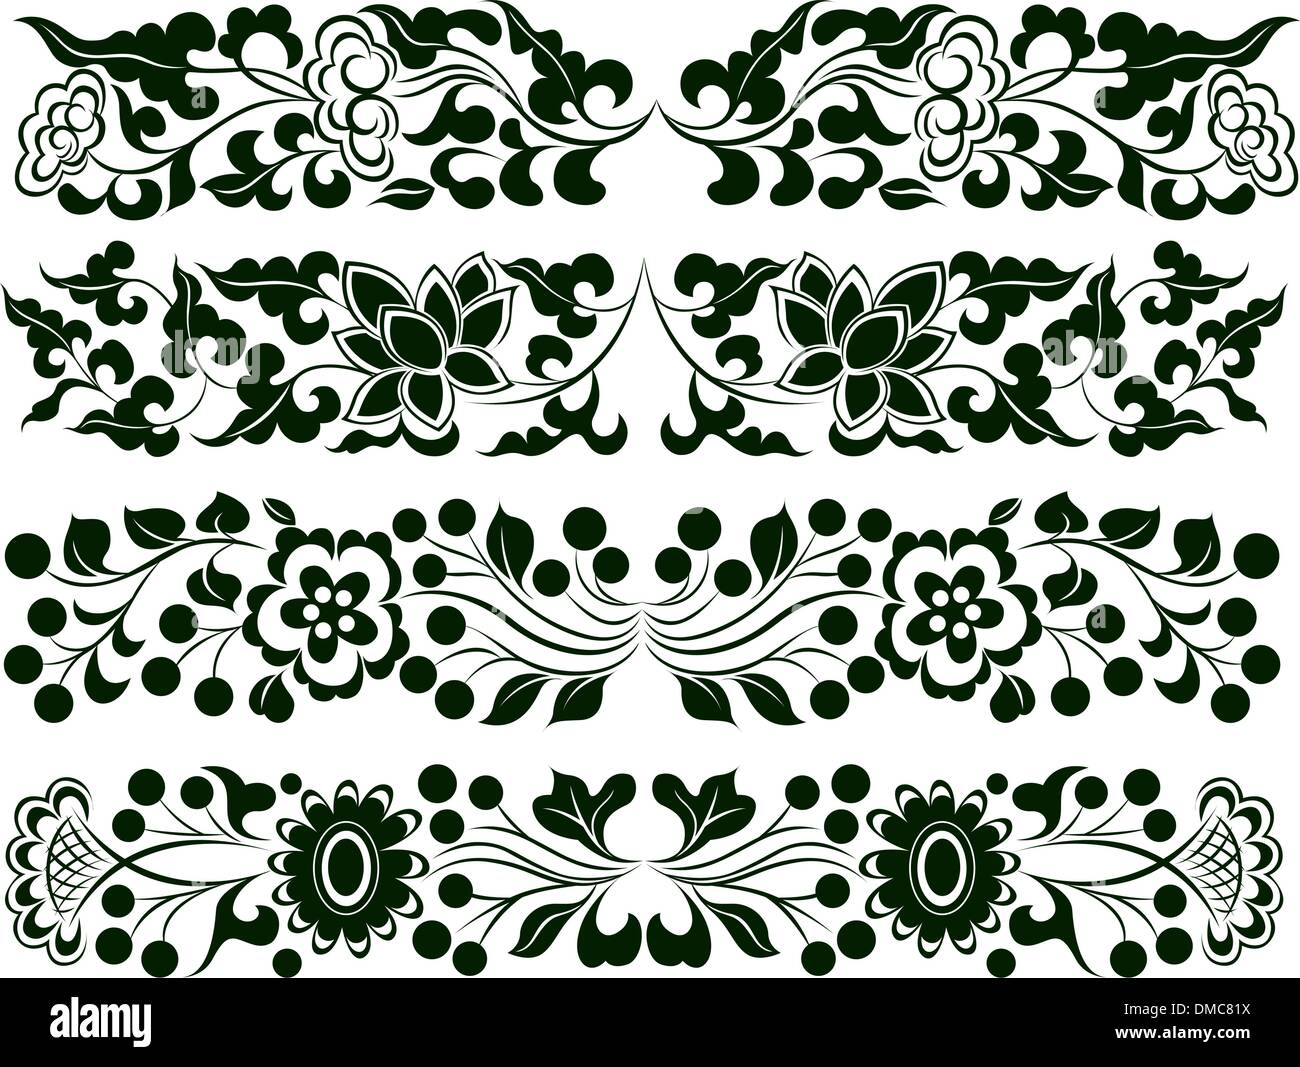 Flower Border Design Stock Vector Image Art Alamy